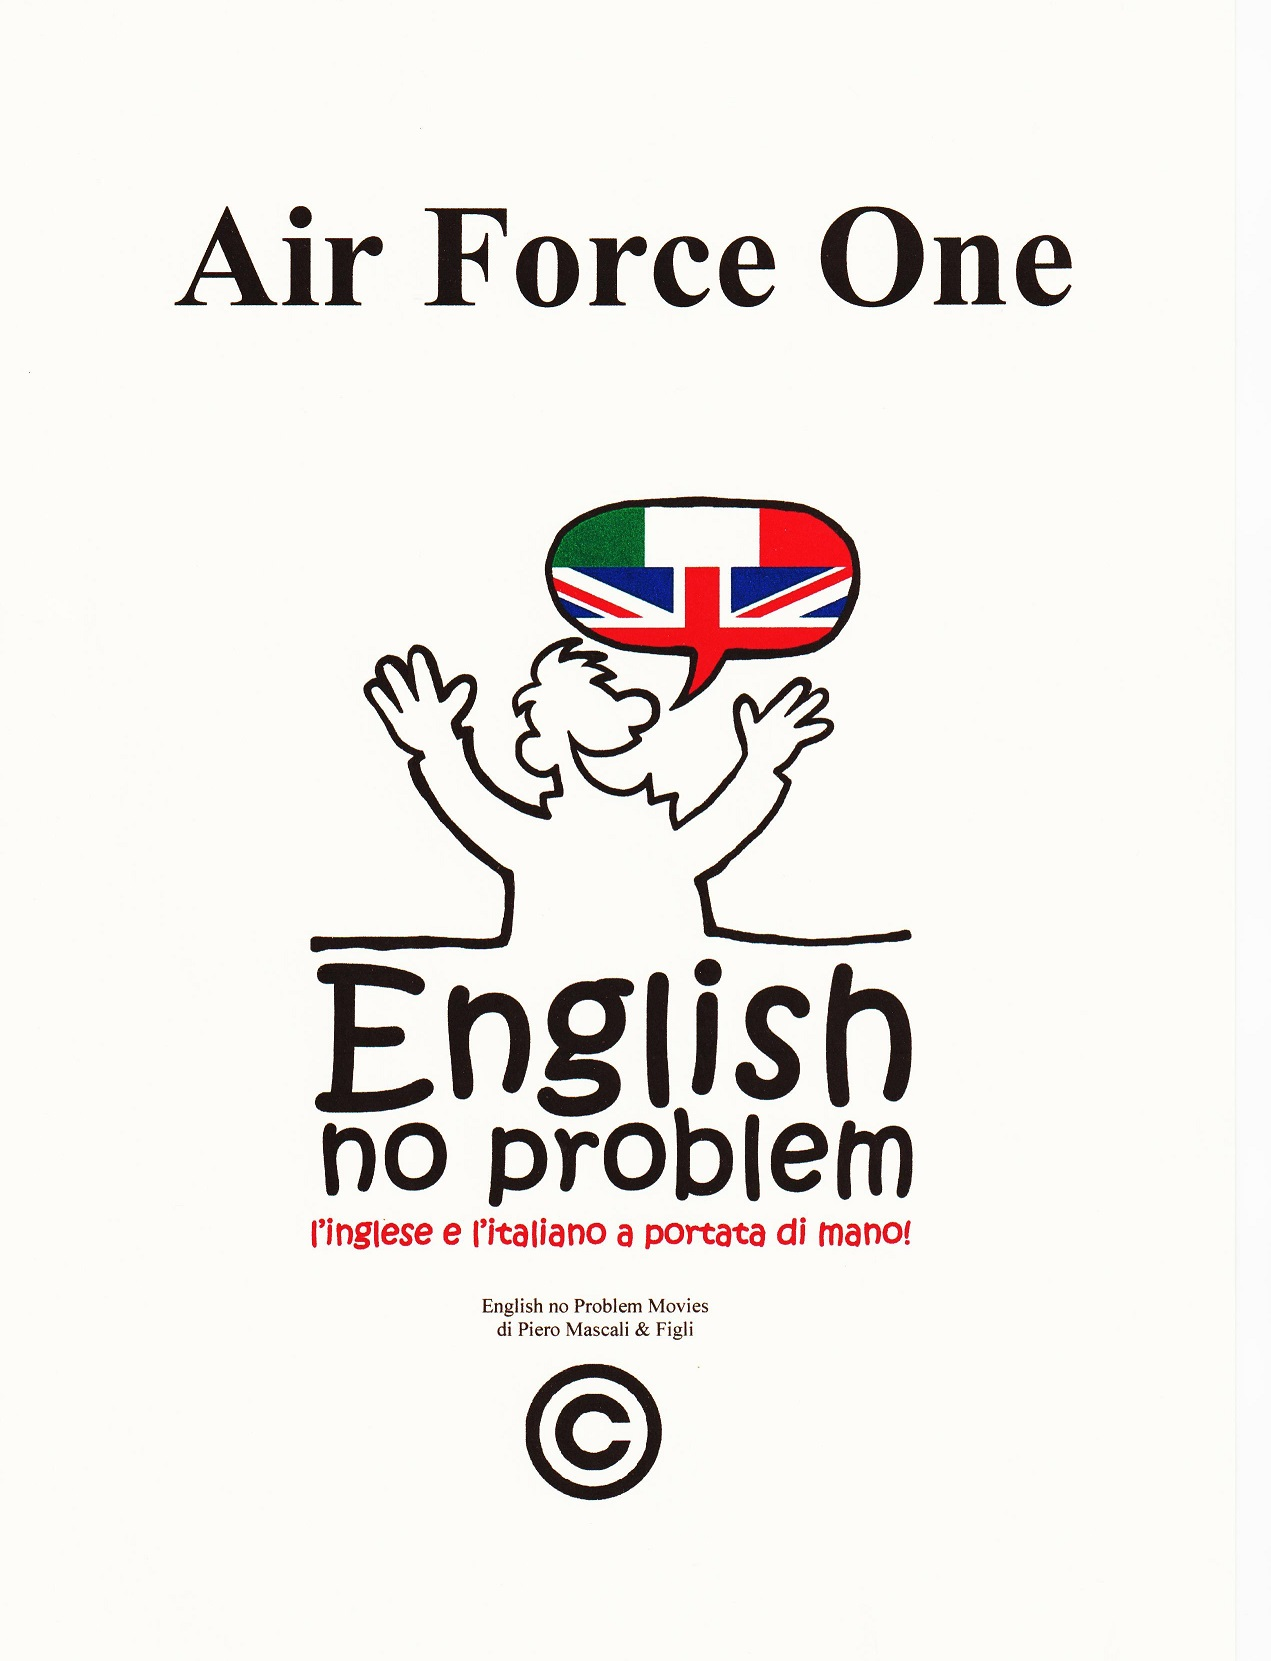 Air force one english no problem